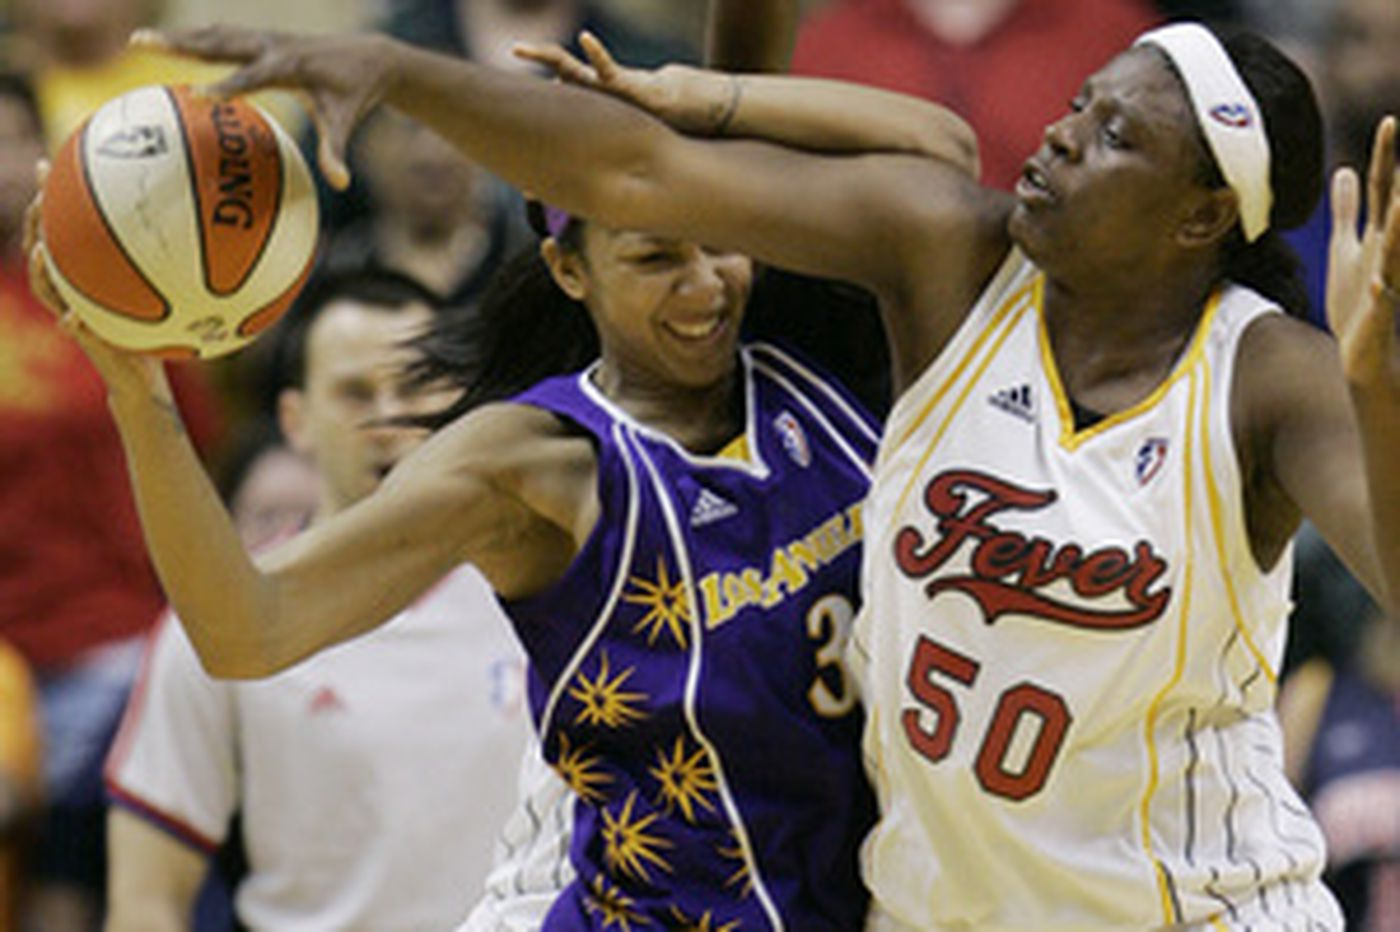 Langhorne trying to find her rhythm in the WNBA